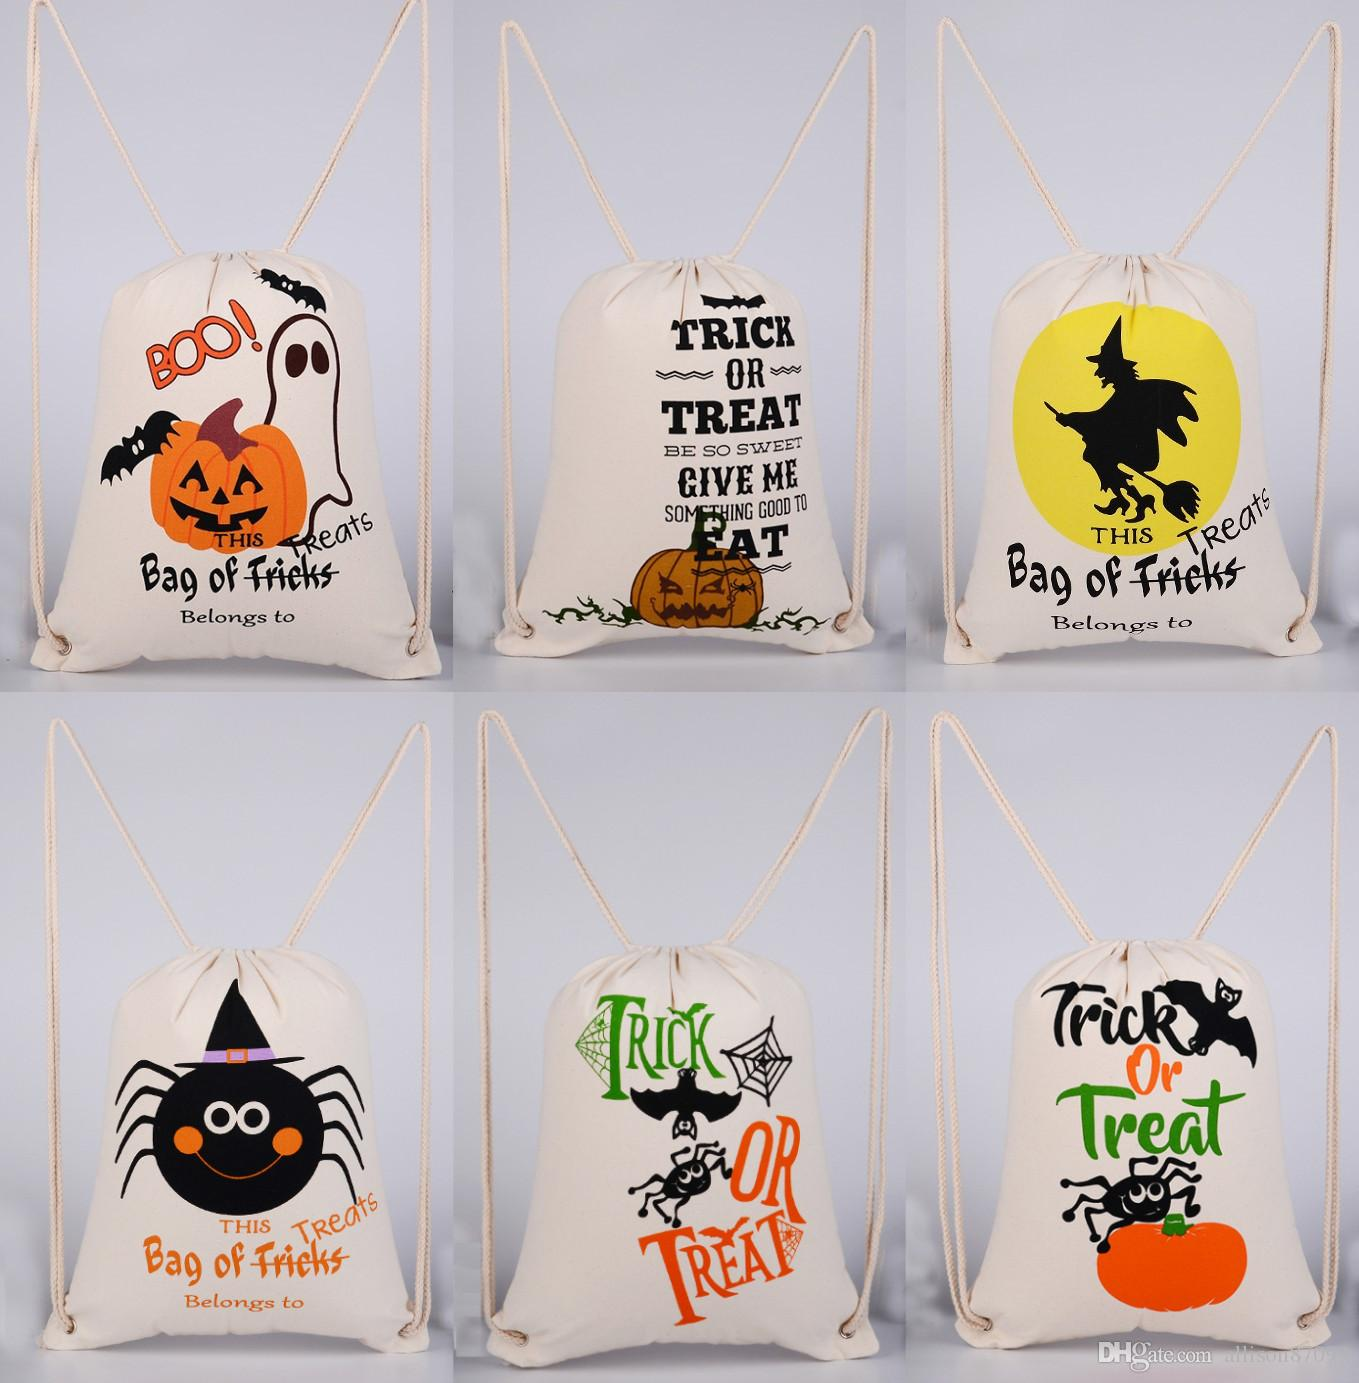 2017 halloween candy bags sackpack drawstring backpack kids cotton canvas gifts trick or treat pumpkin devil spider halloween 2017 new from allison87099 - 2017 Halloween Candy